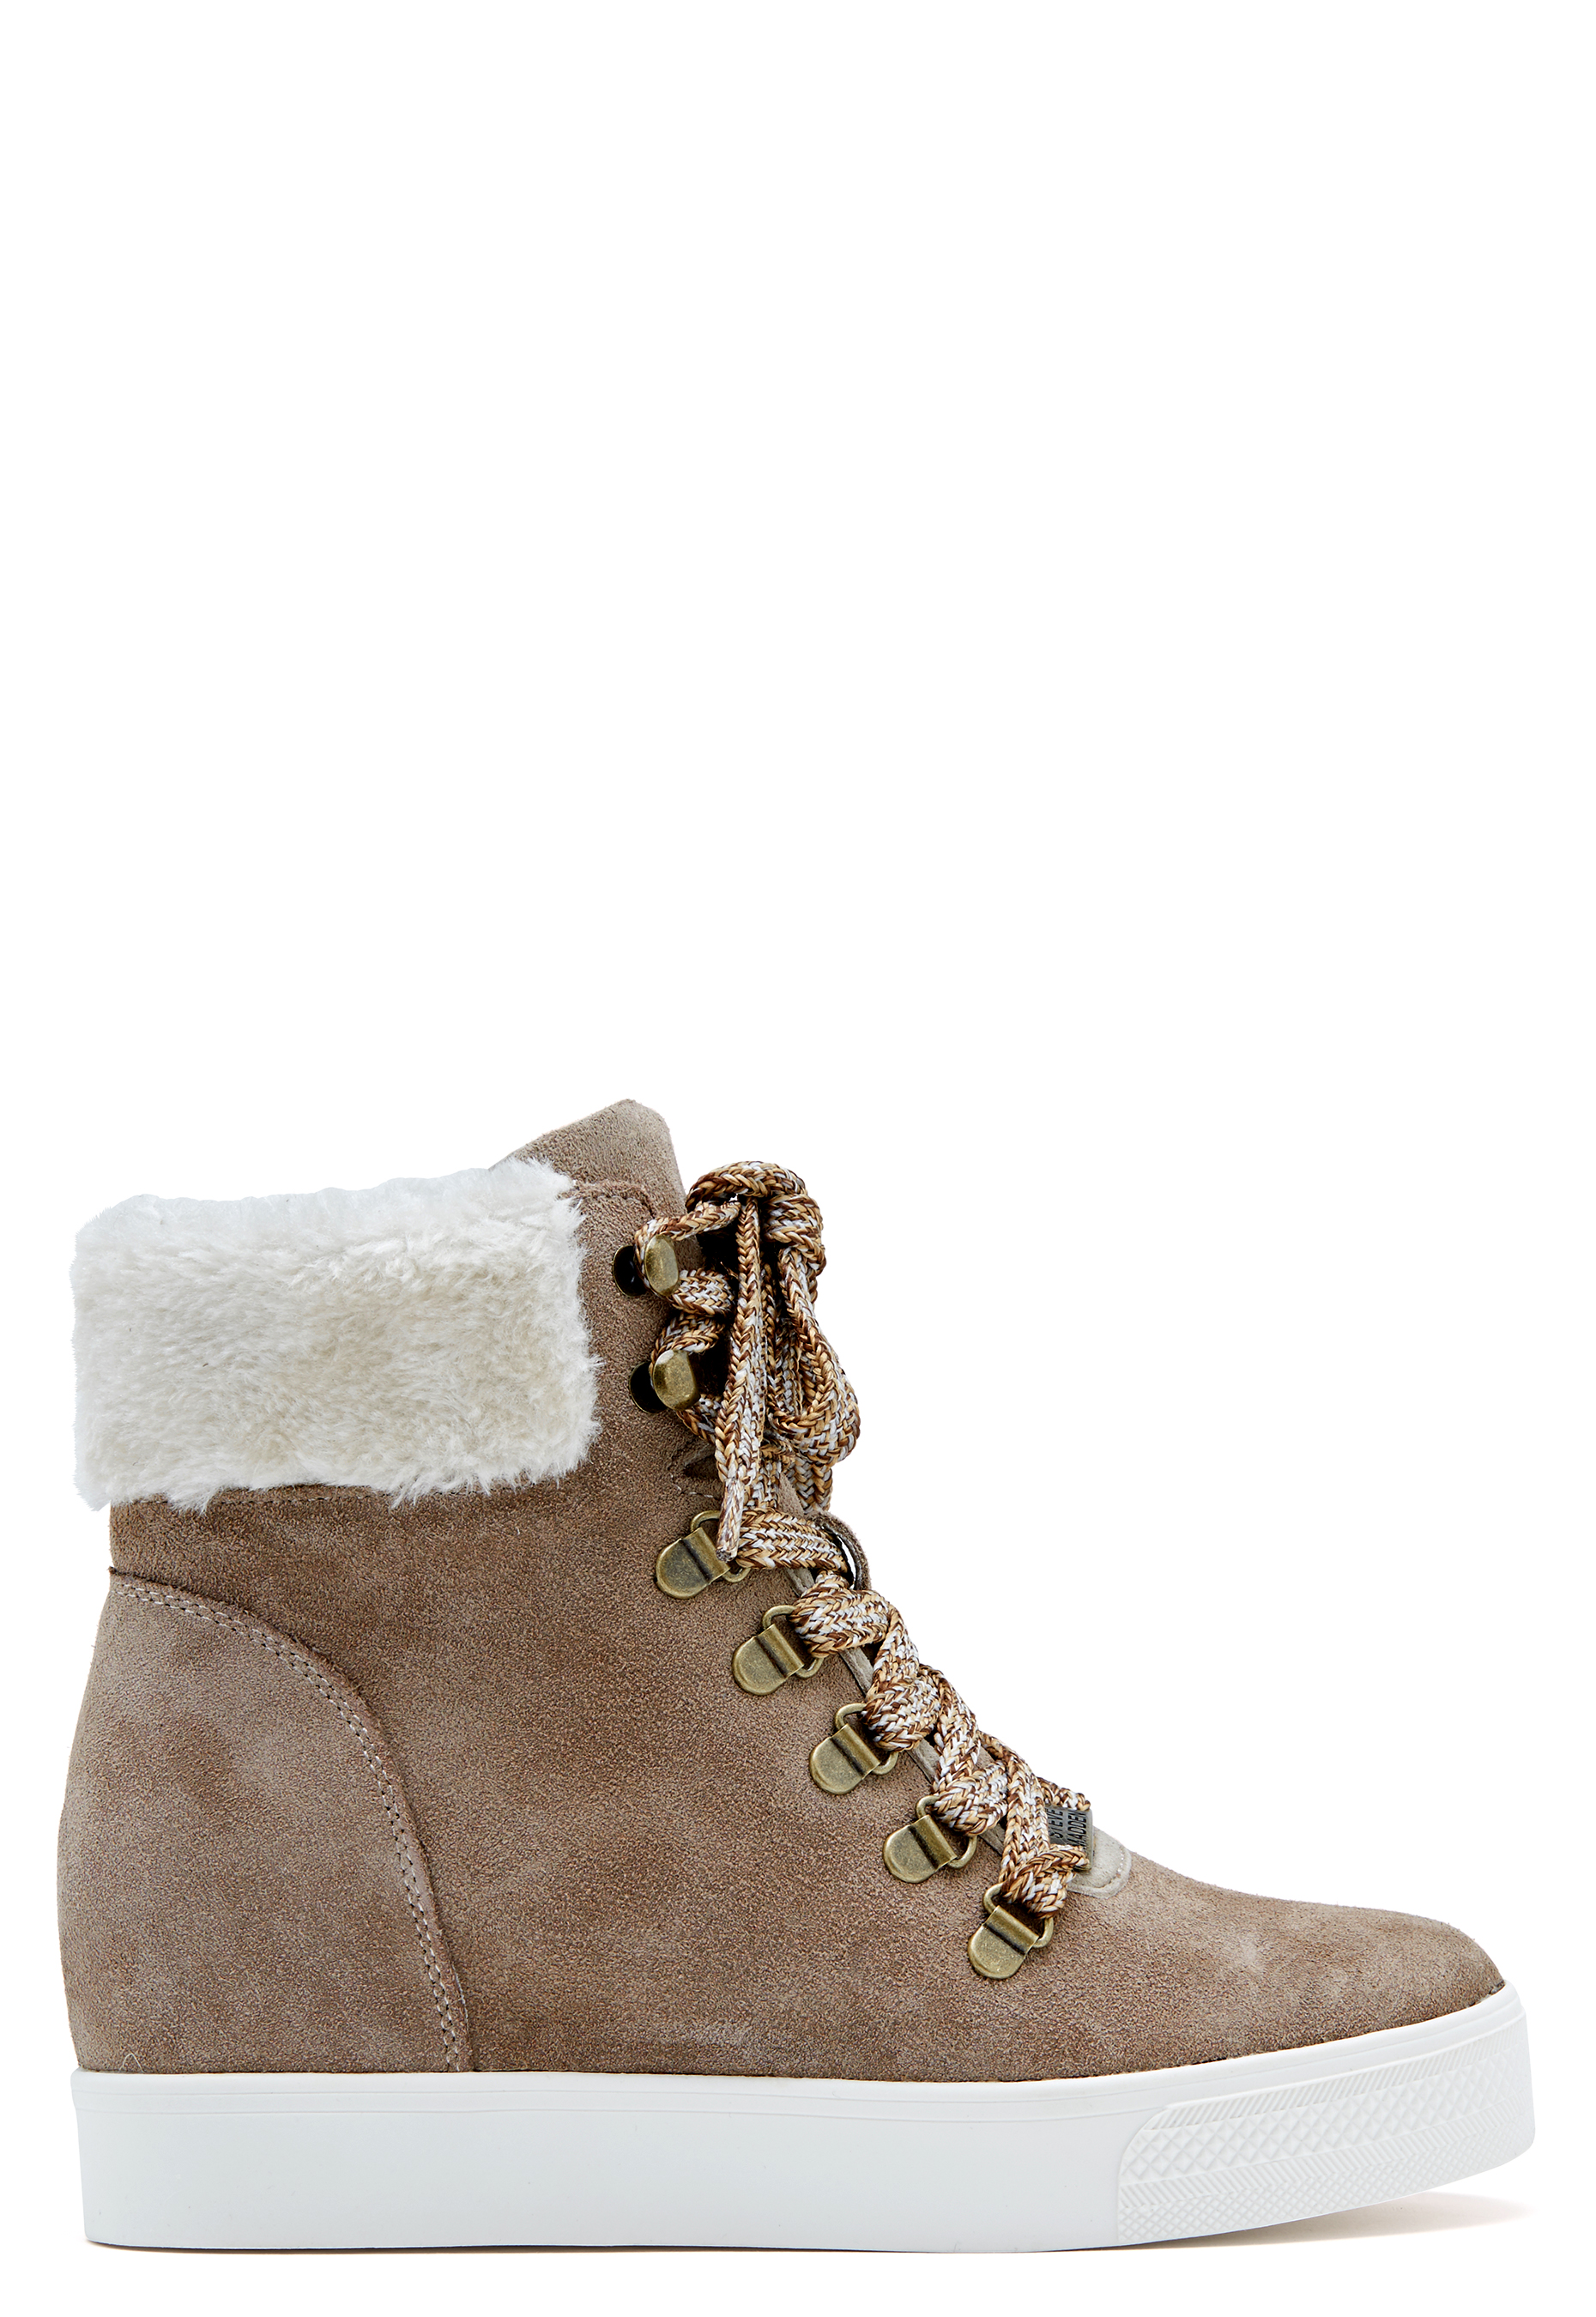 Steve Madden Windy Suede Boots Taupe Bubbleroom